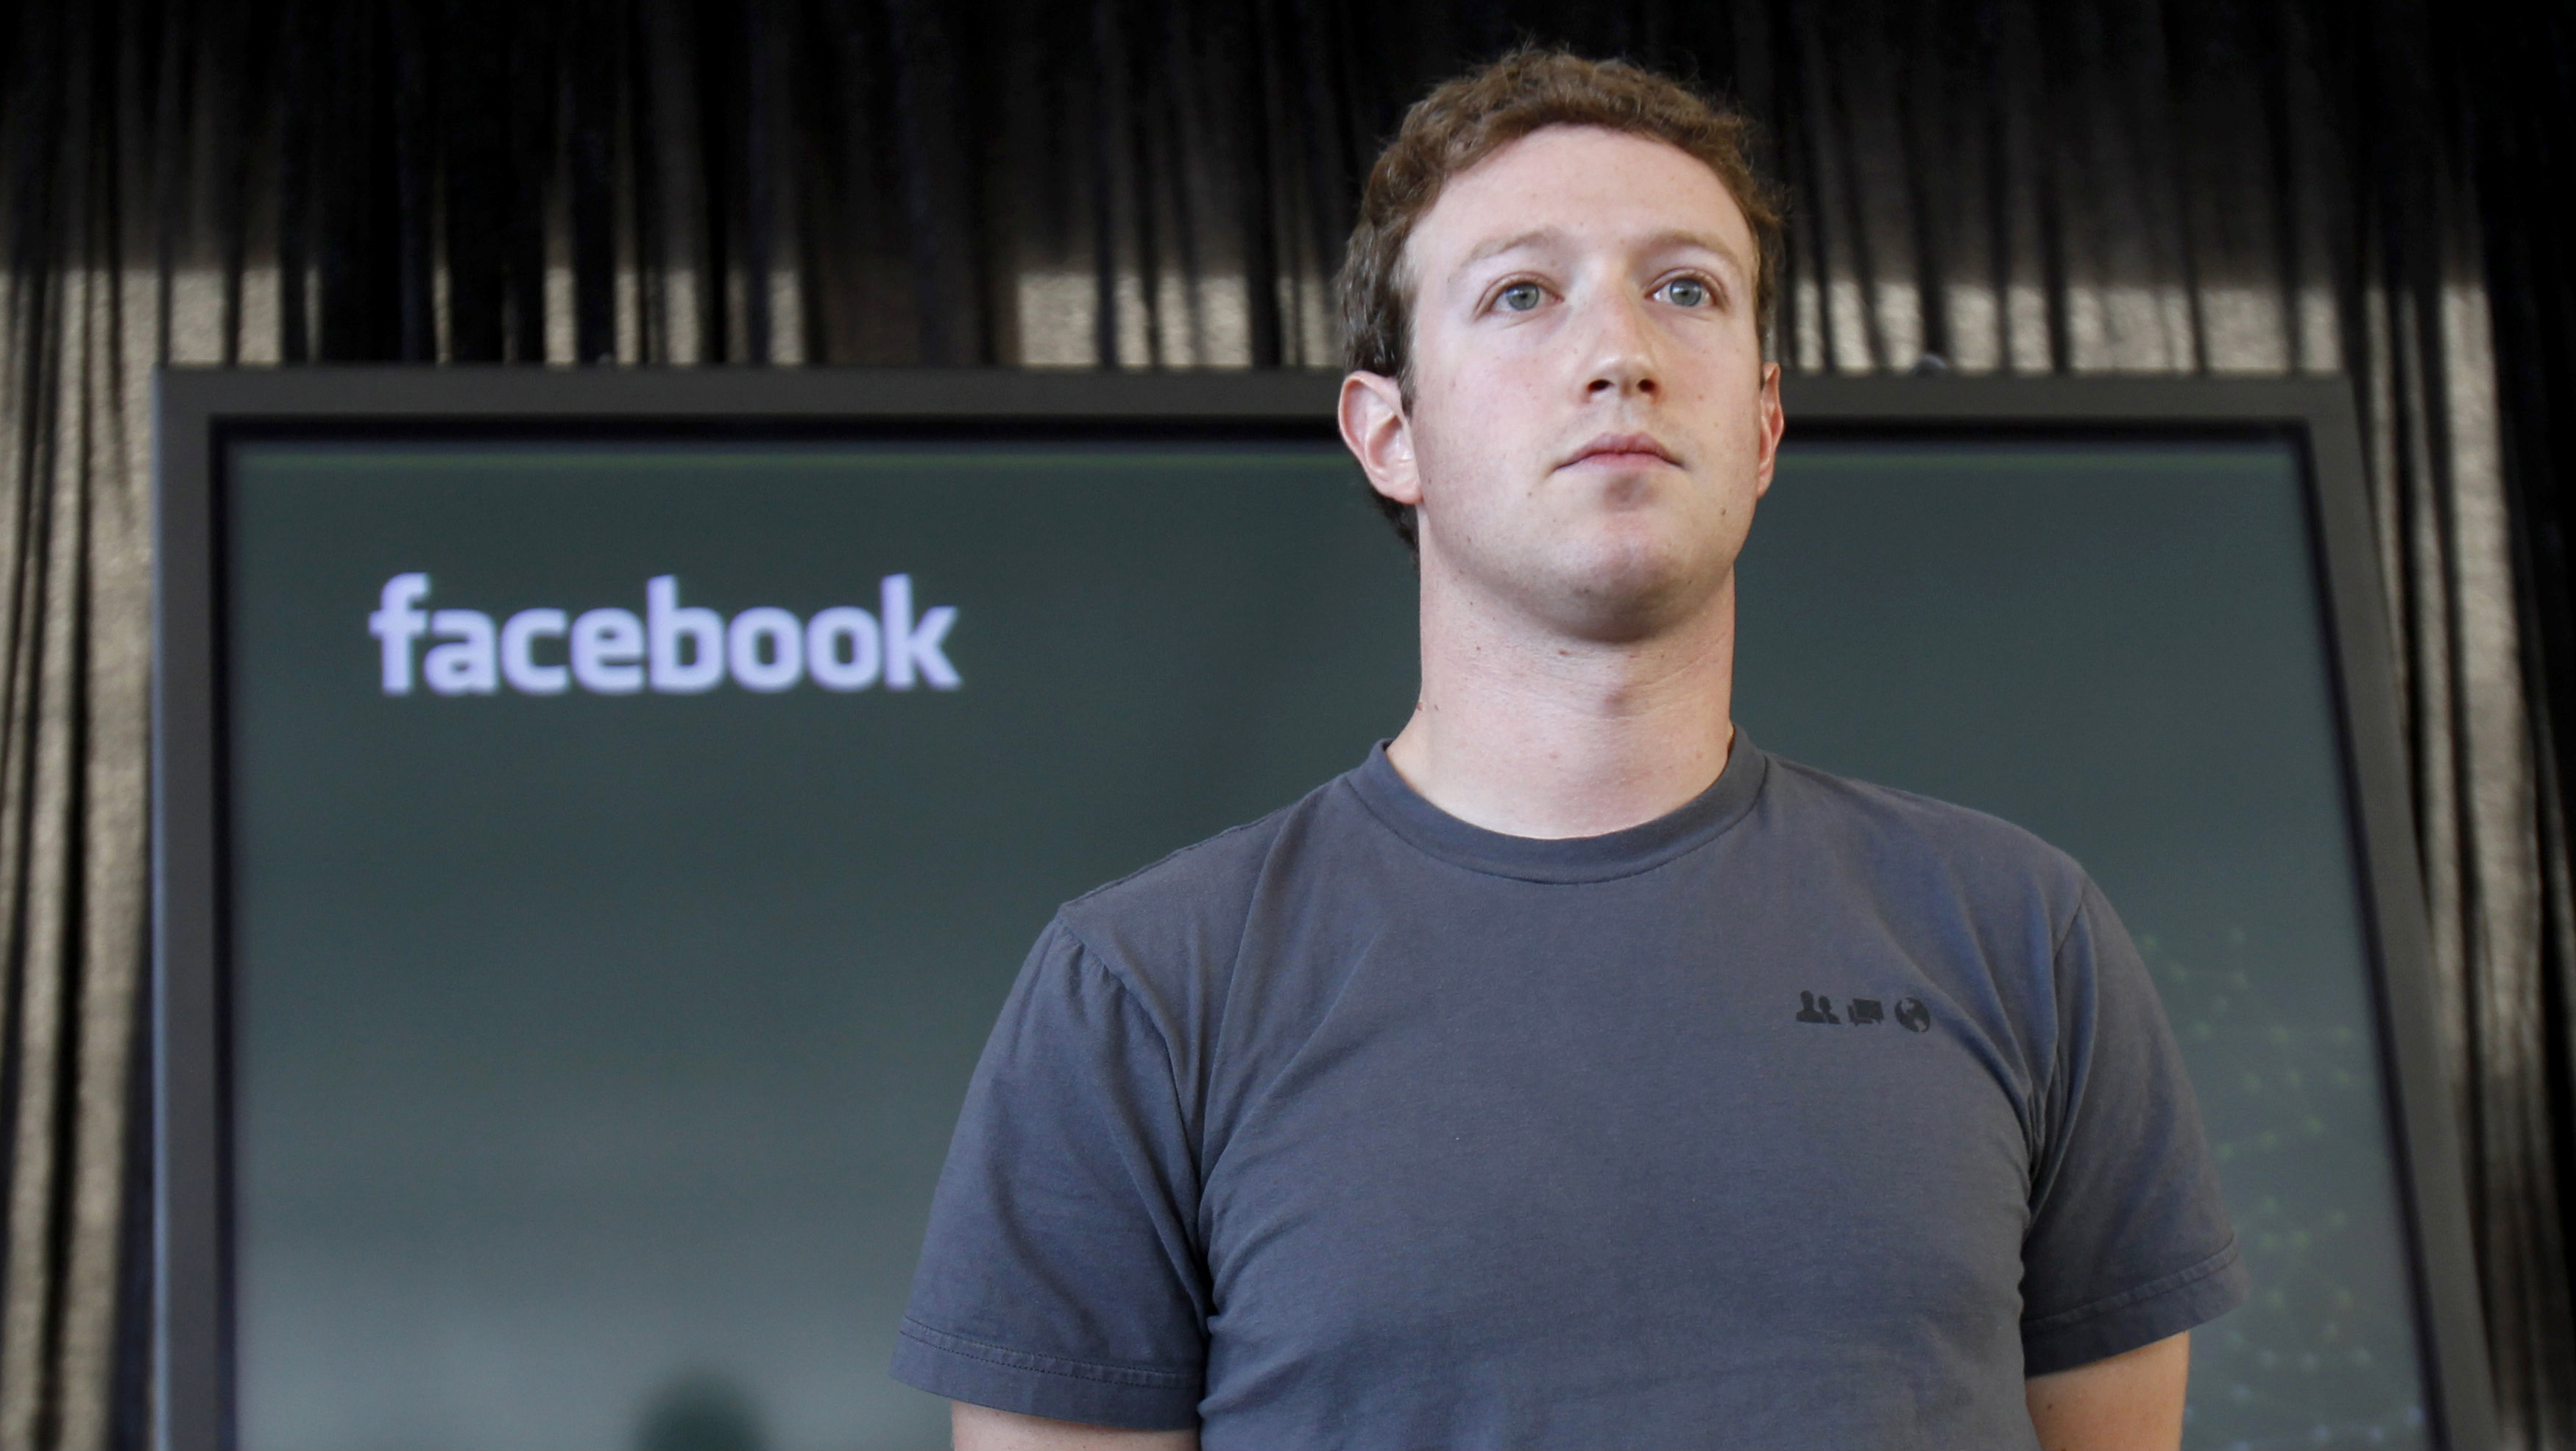 Facebook CEO Mark Zuckerberg listens to a question from the audience after unveiling a new messaging system during a news conference in San Francisco.